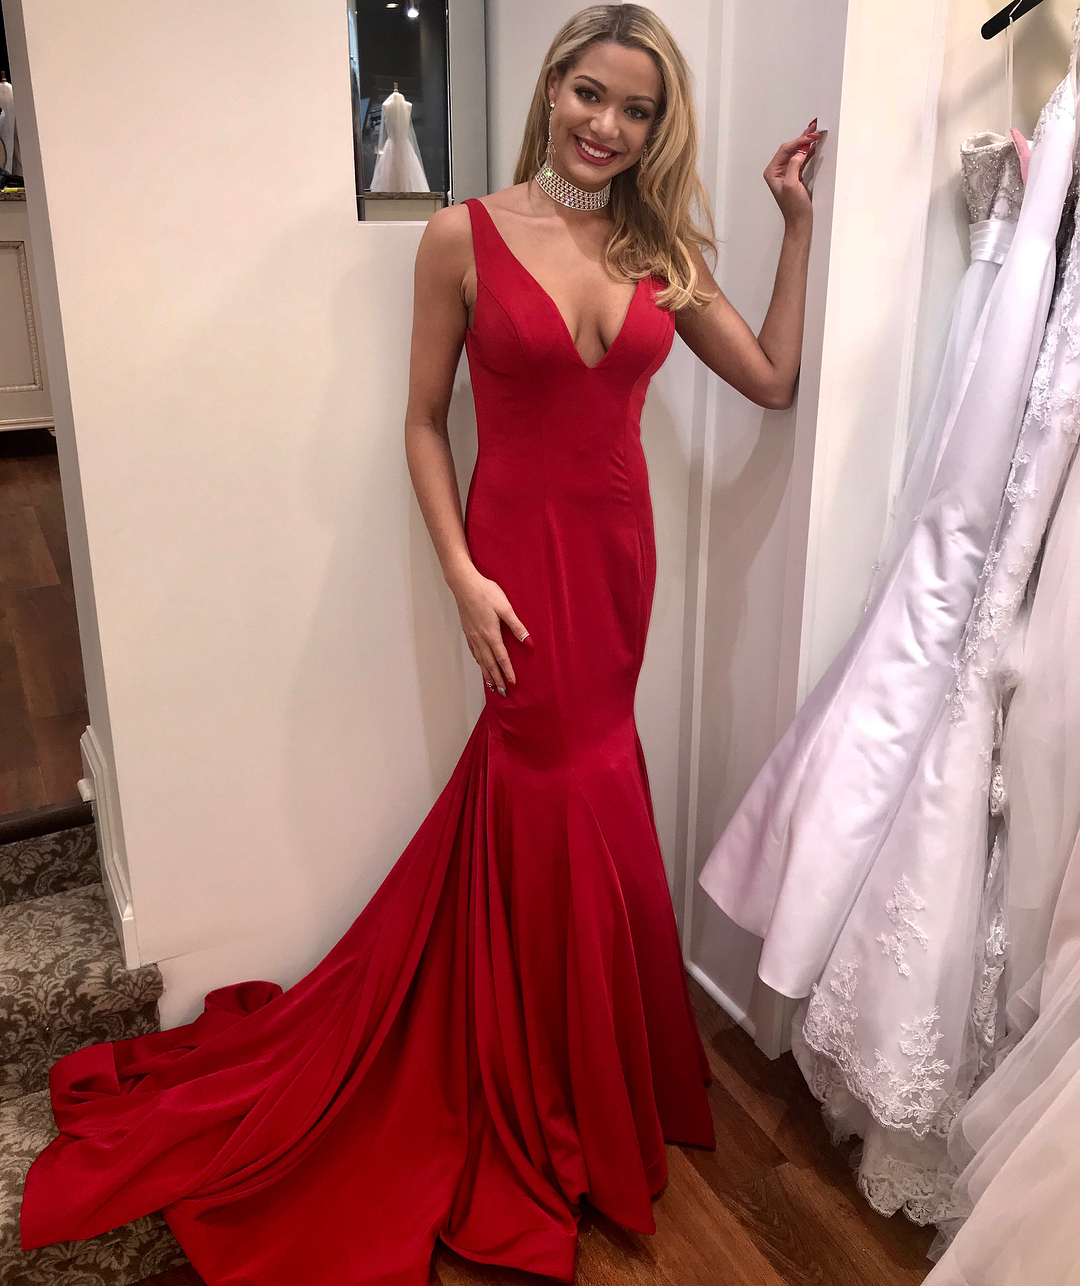 Mermaid Cocktail Dress: Sexy Mermaid Prom Dress Red Deep V-neck Prom Dresses Open